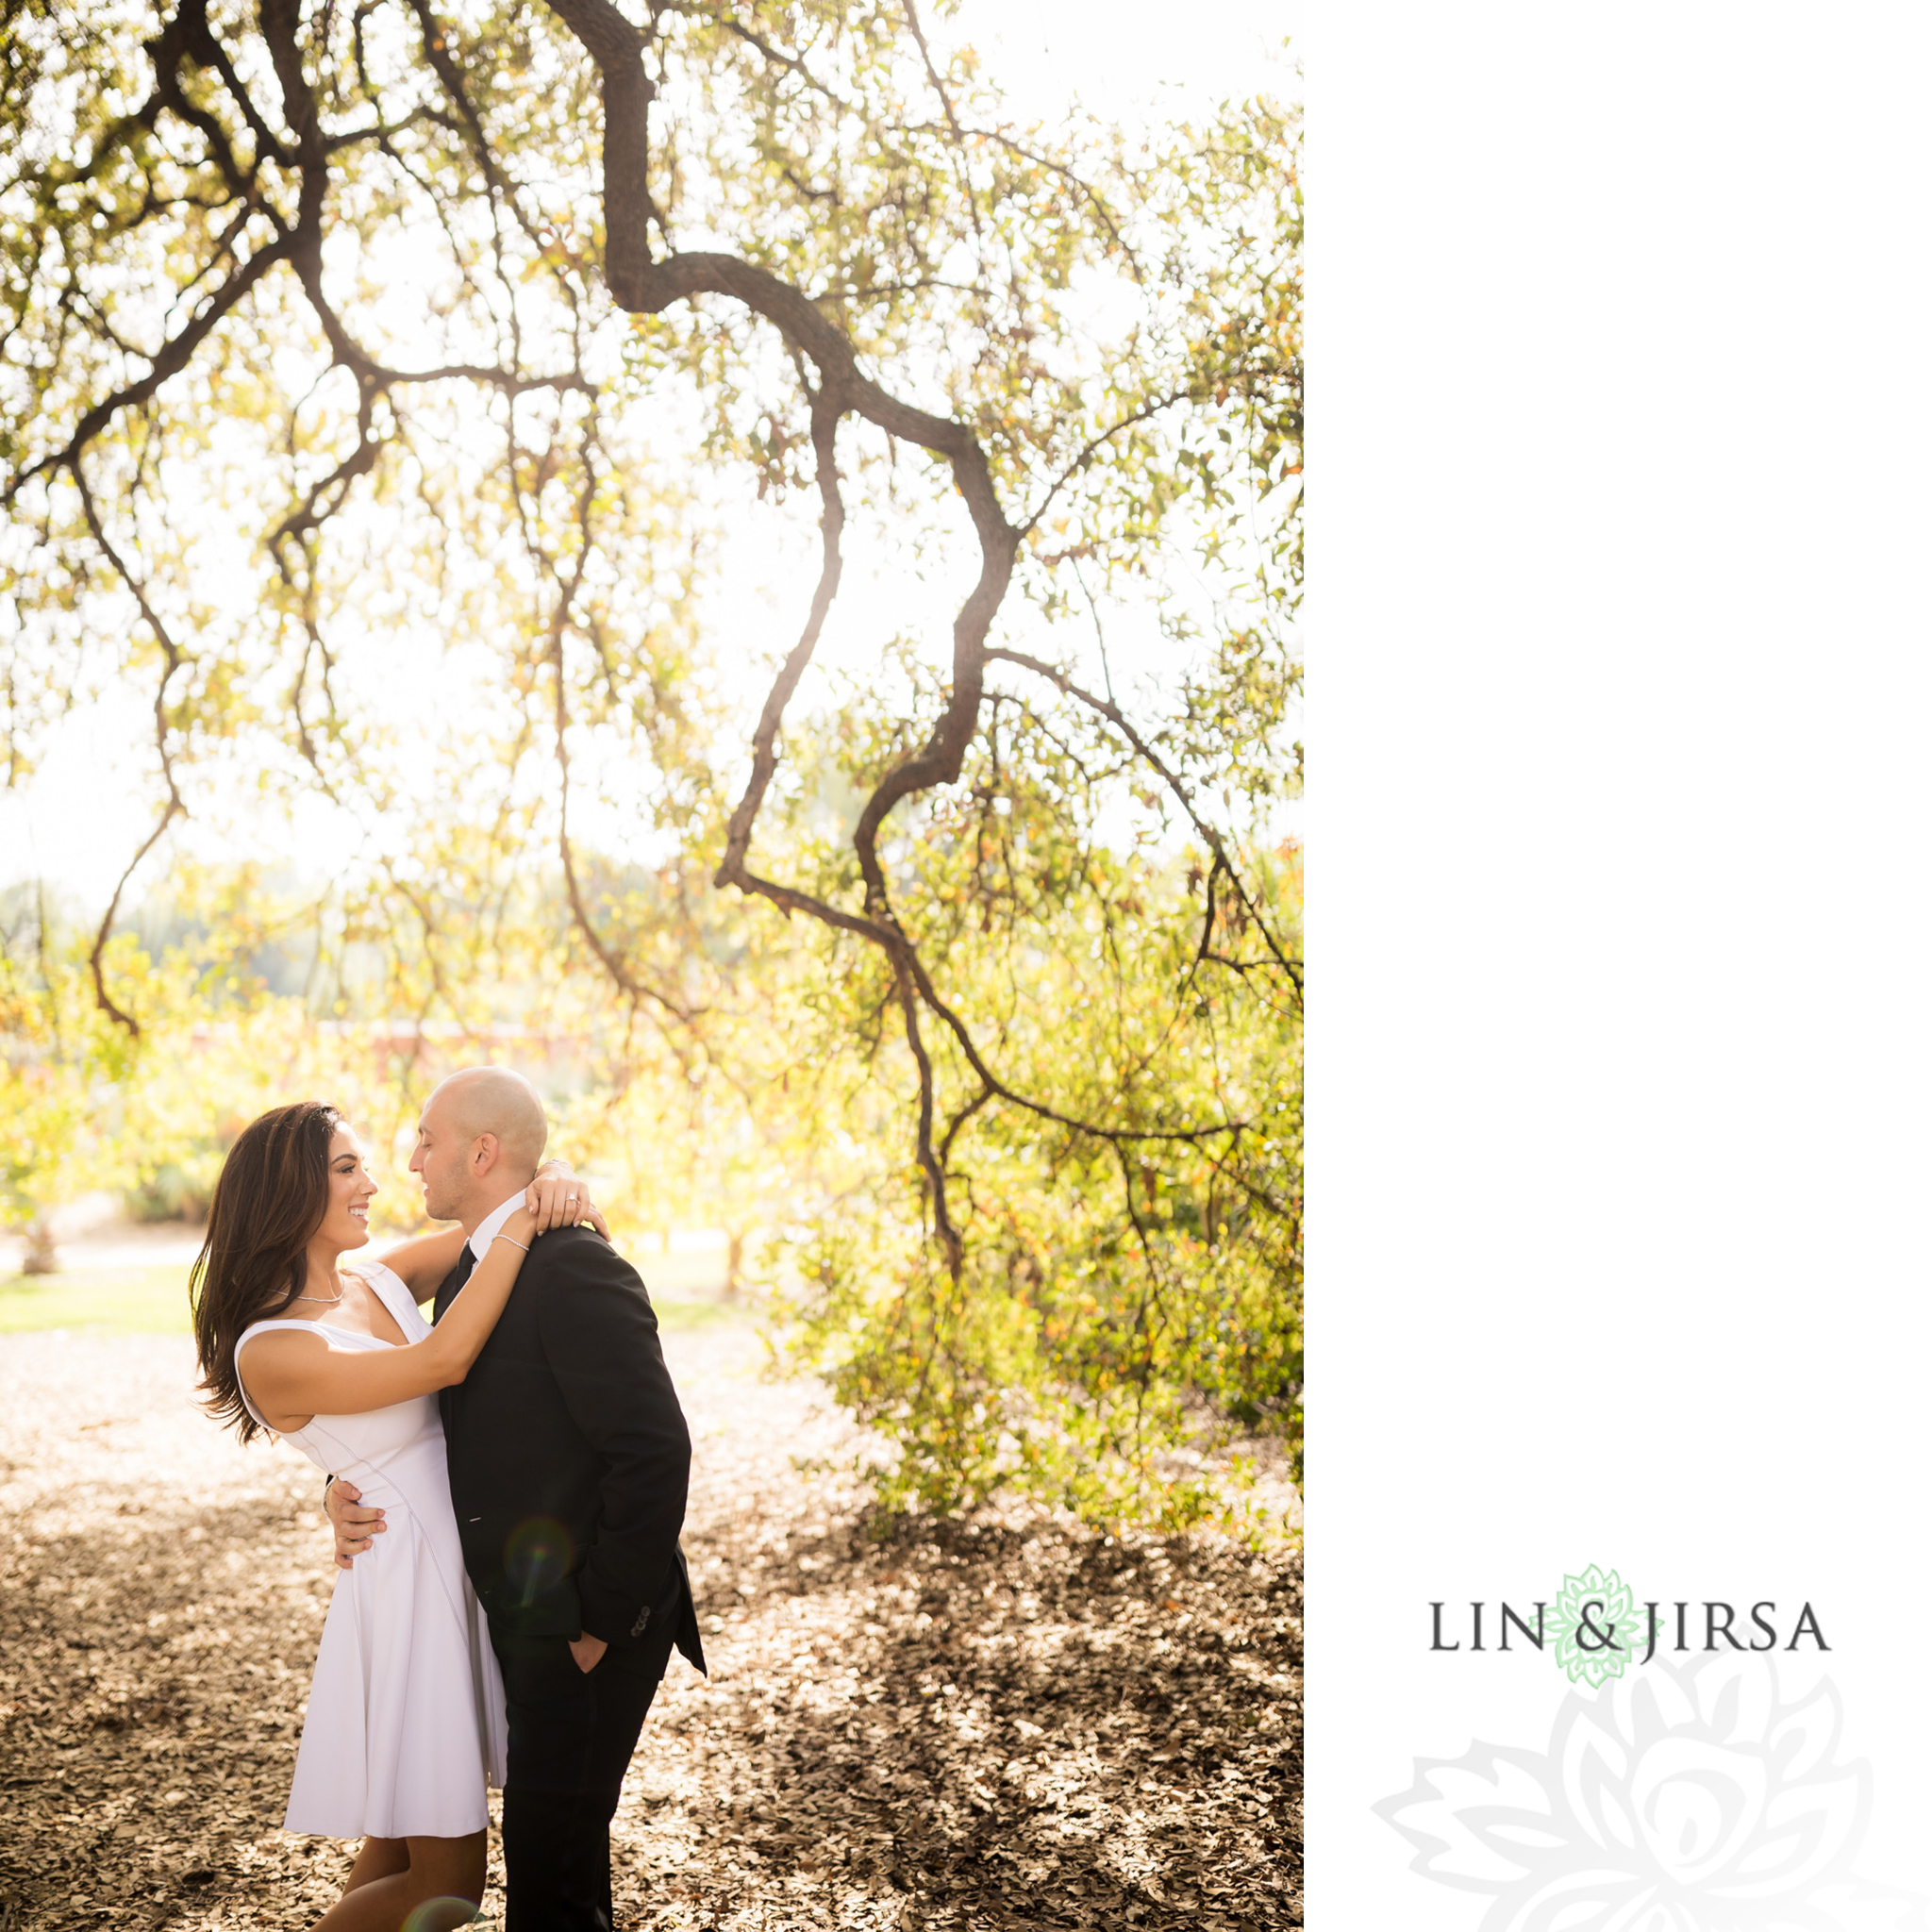 05-Los-angeles-arboretum-engagement-photography